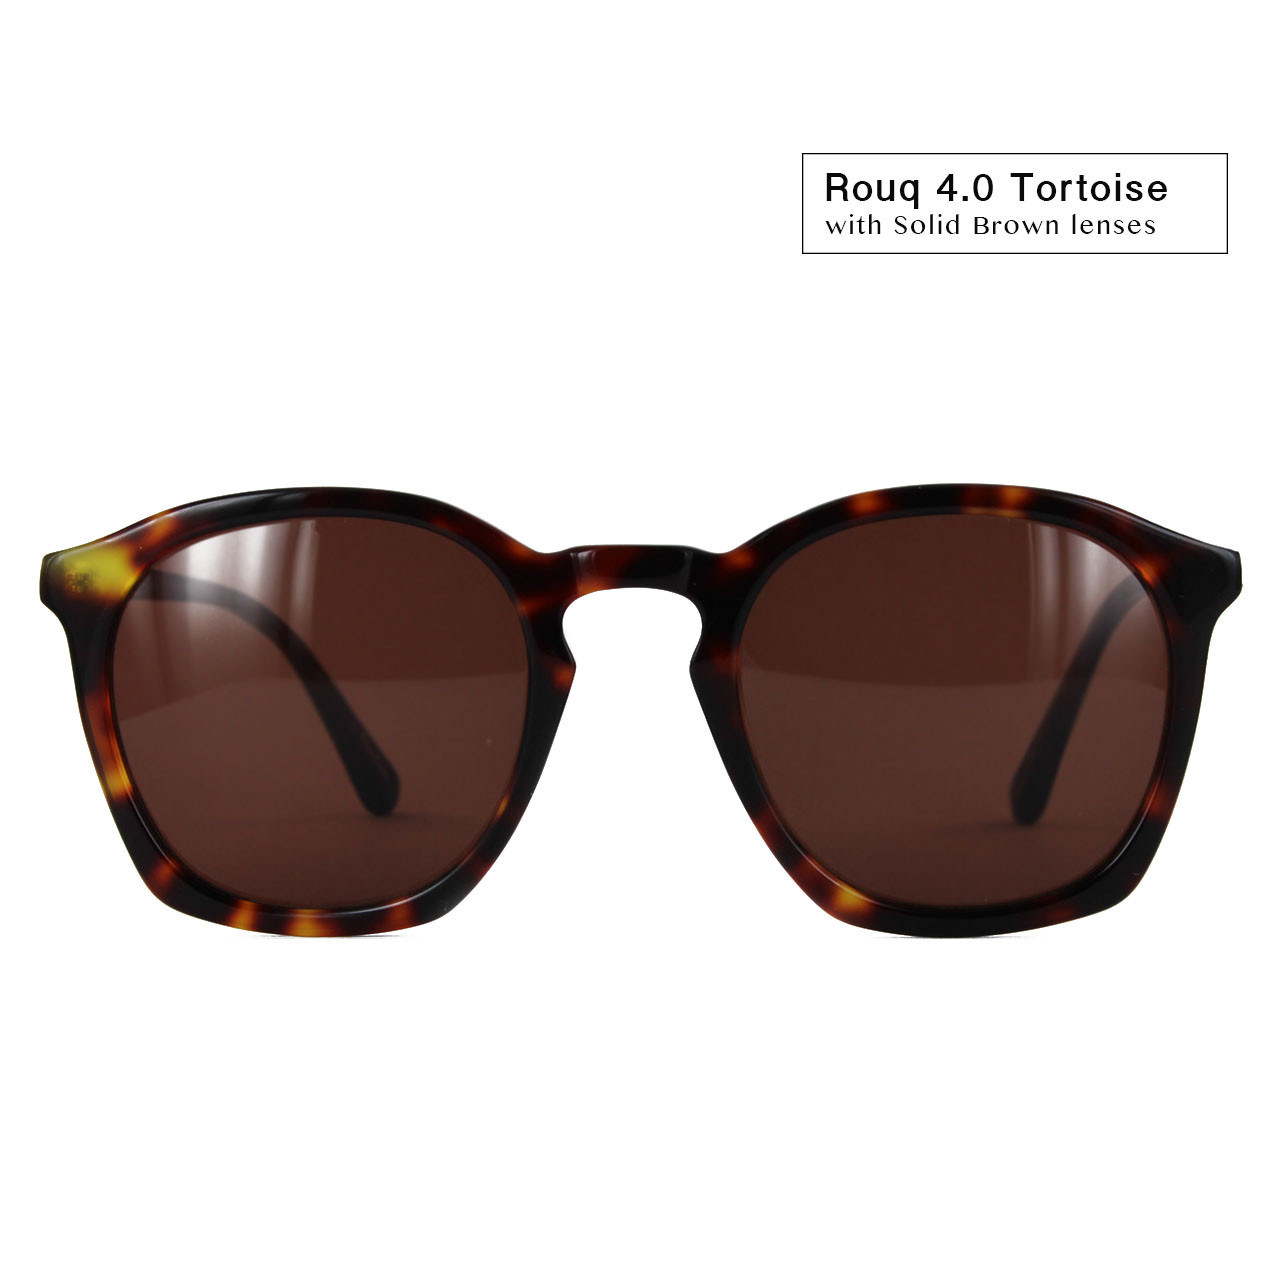 4.0 Tortoise with Solid Brown Lenses